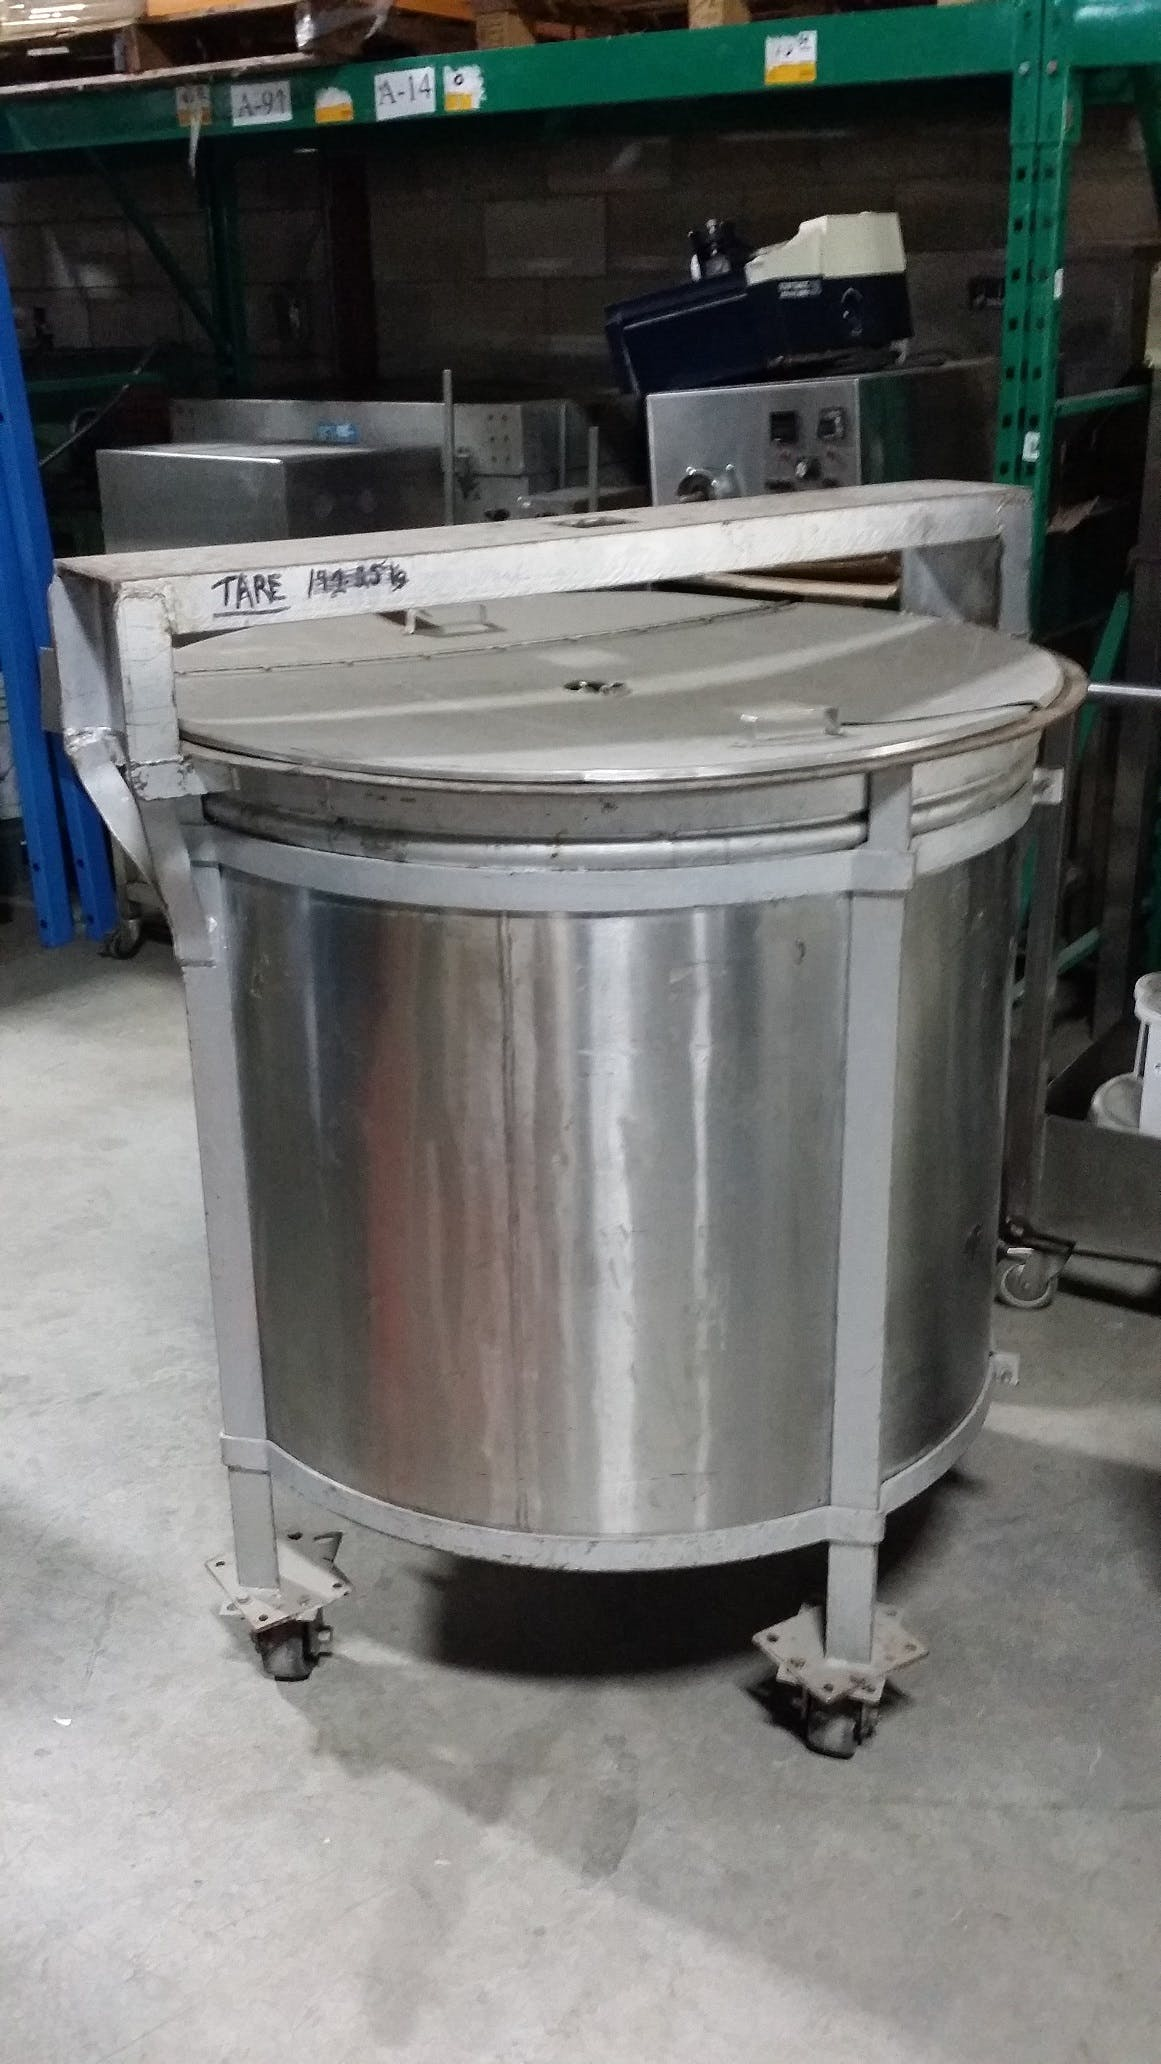 Stainless Steel Single Wall tank - 650 liters (172 gallons) Food tank sold by Aevos Equipment